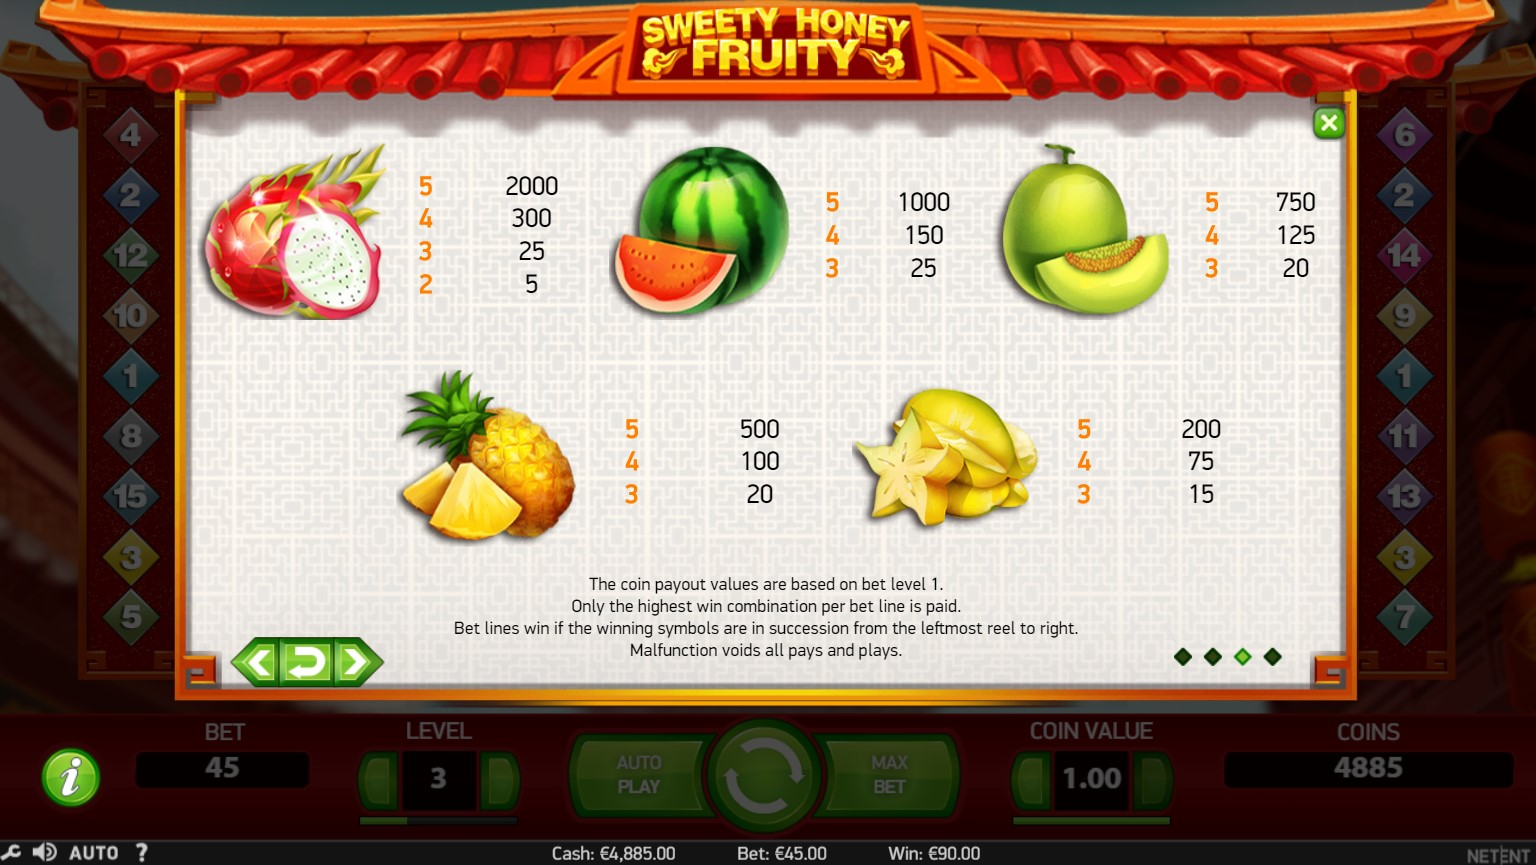 Sweety Honey Fruity Slot Paytable